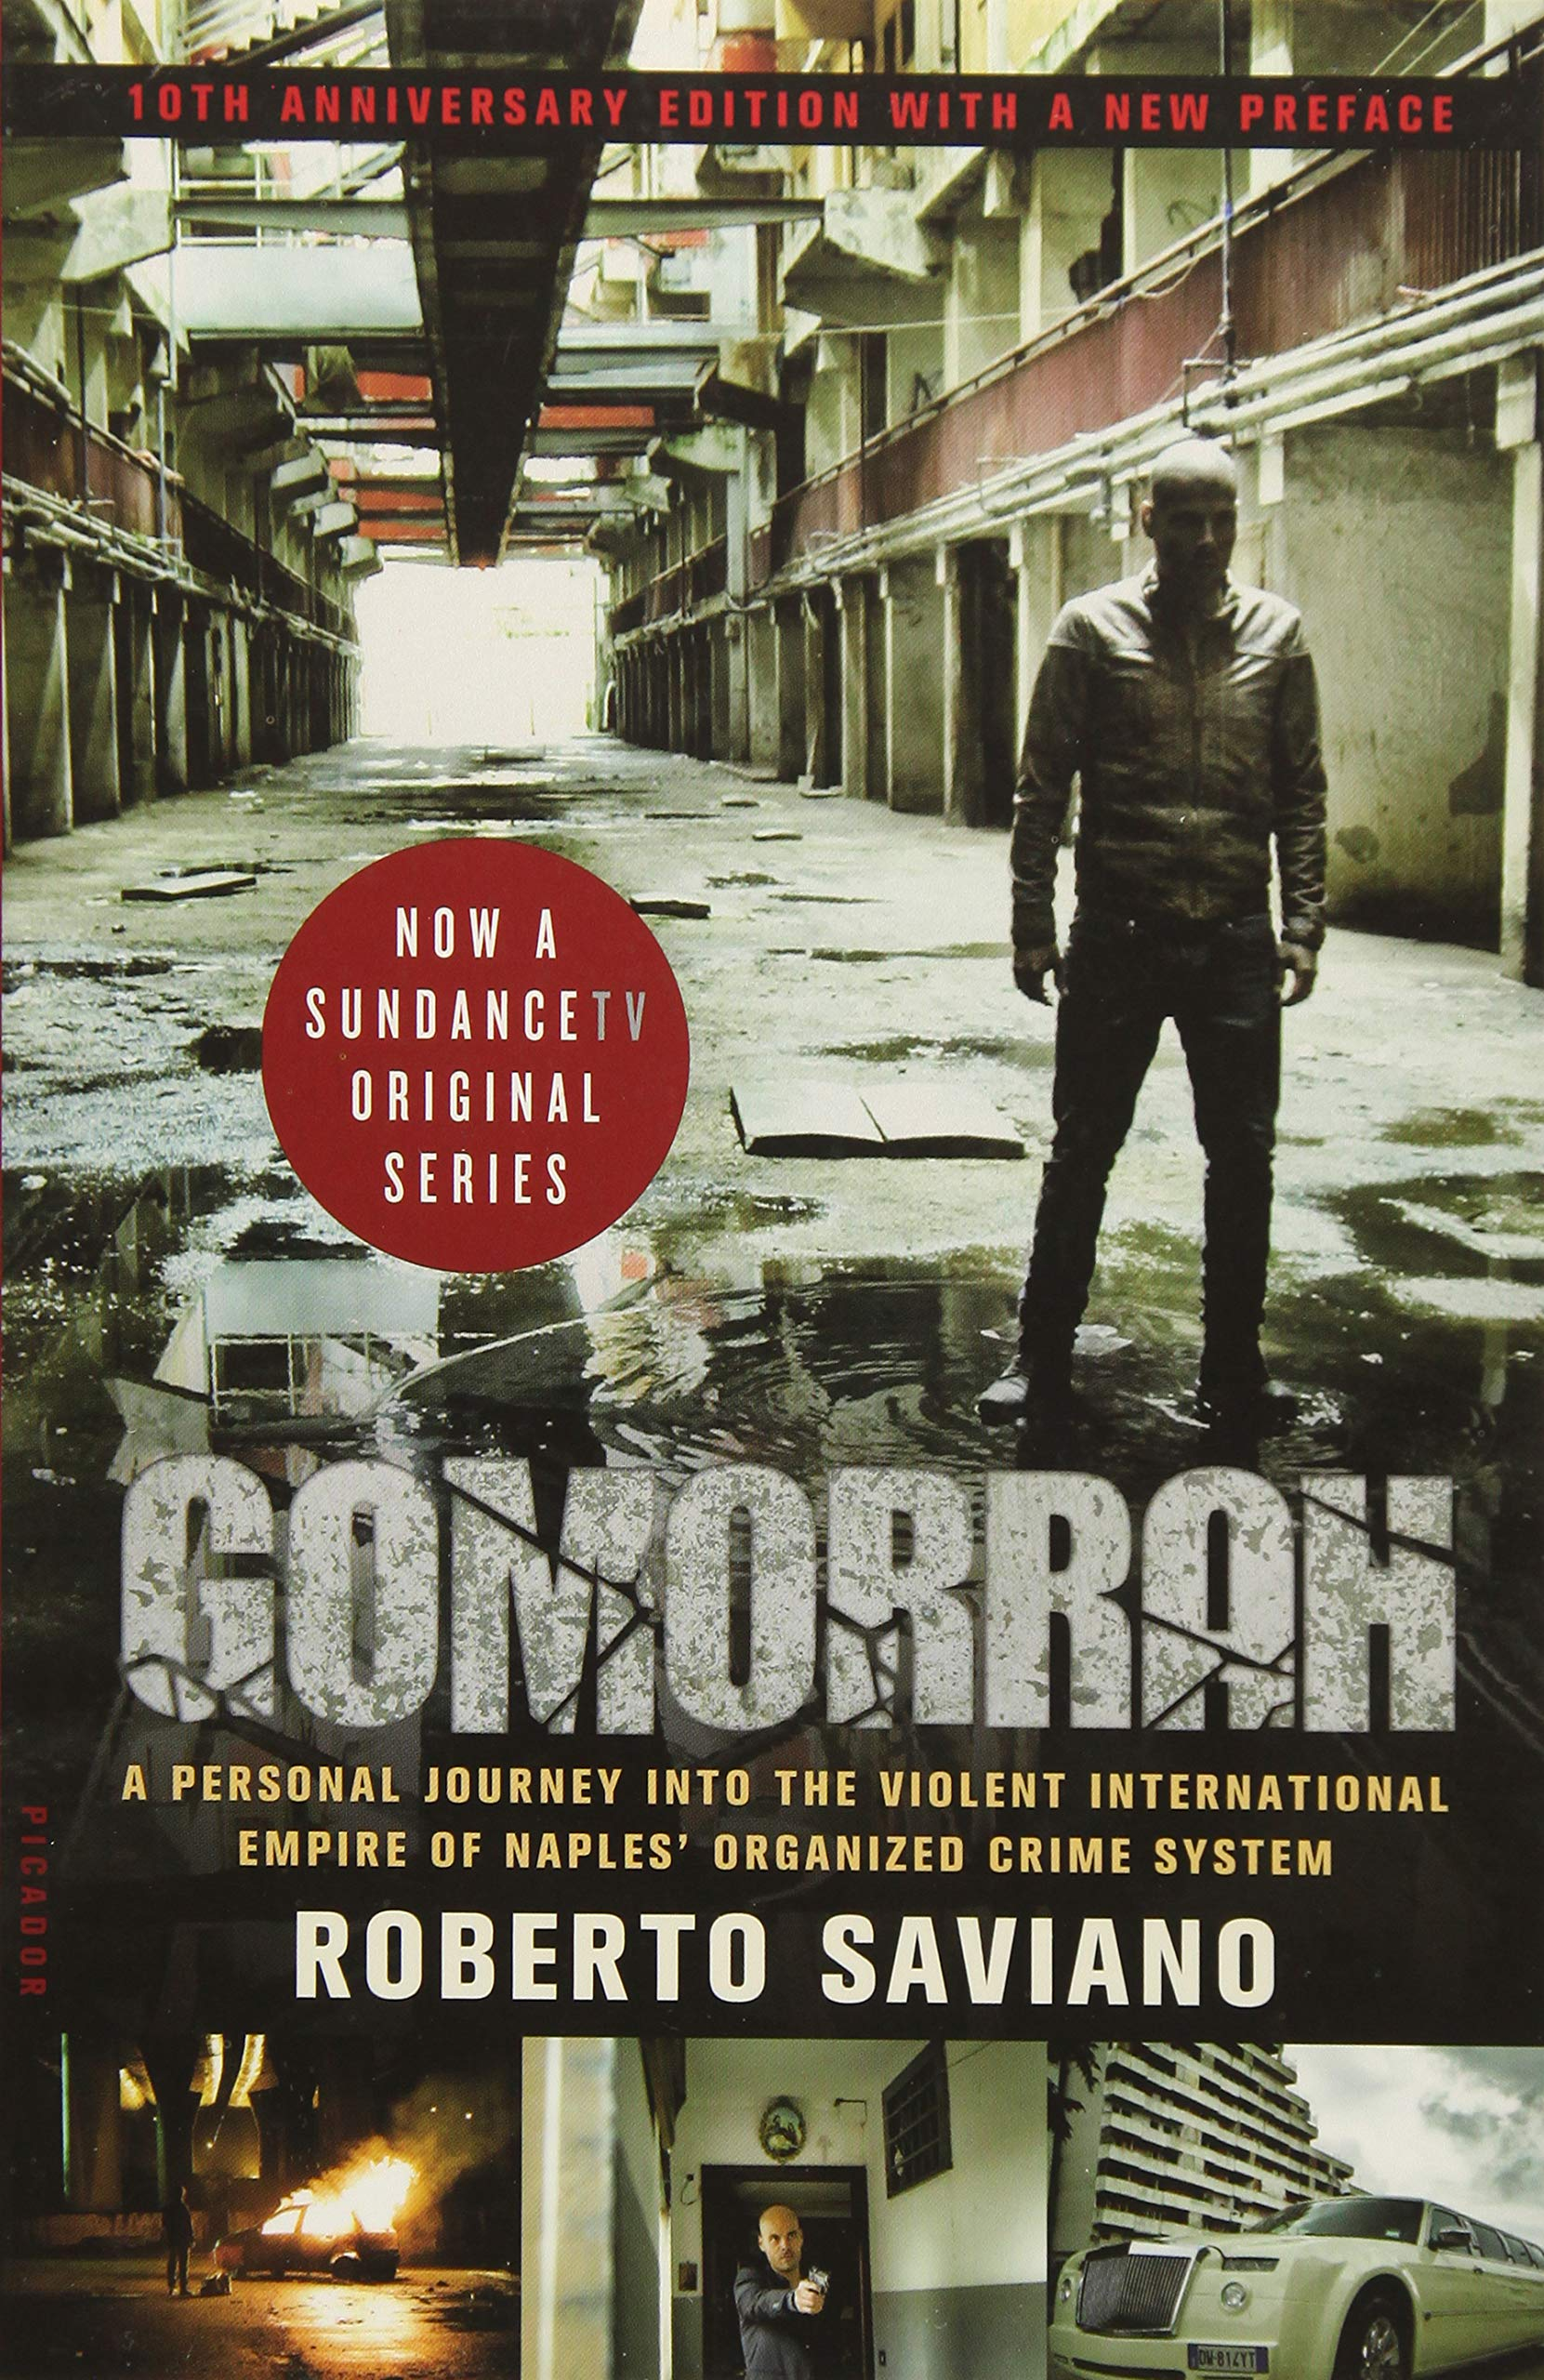 Gomorrah: A Personal Journey into the Violent International Empire of Naples' Organized Crime System (10th Anniversary Edition with a New Preface)